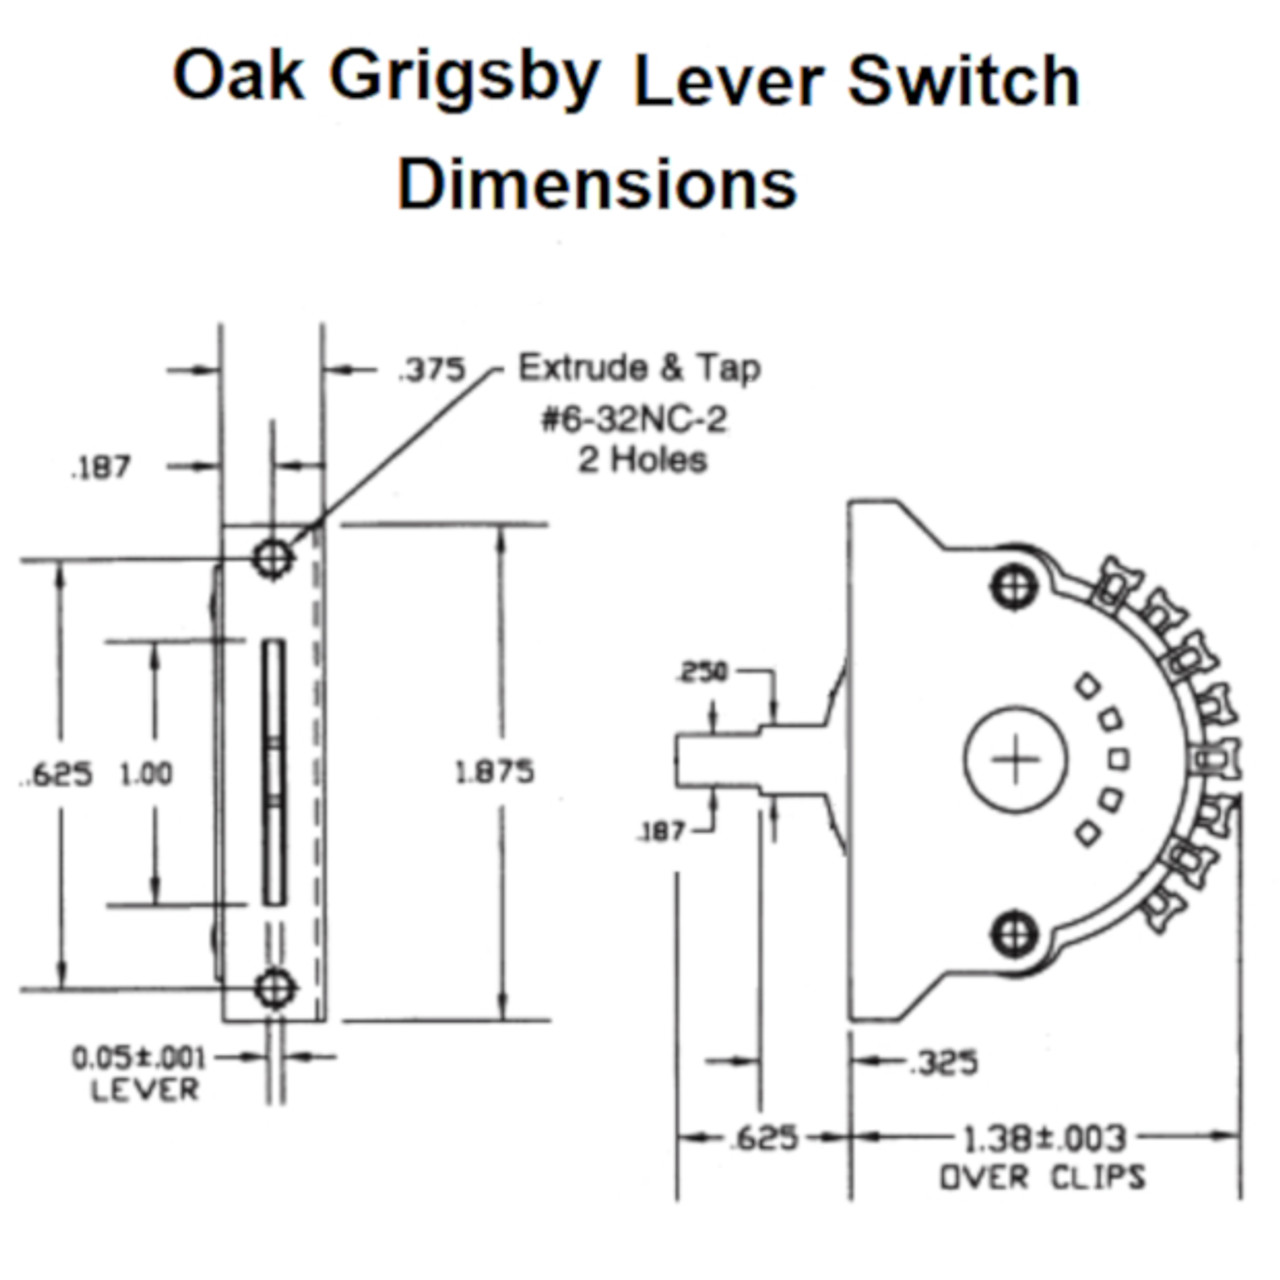 5-Way Guitar Lever Switch Dimensions-Oak Grigsby